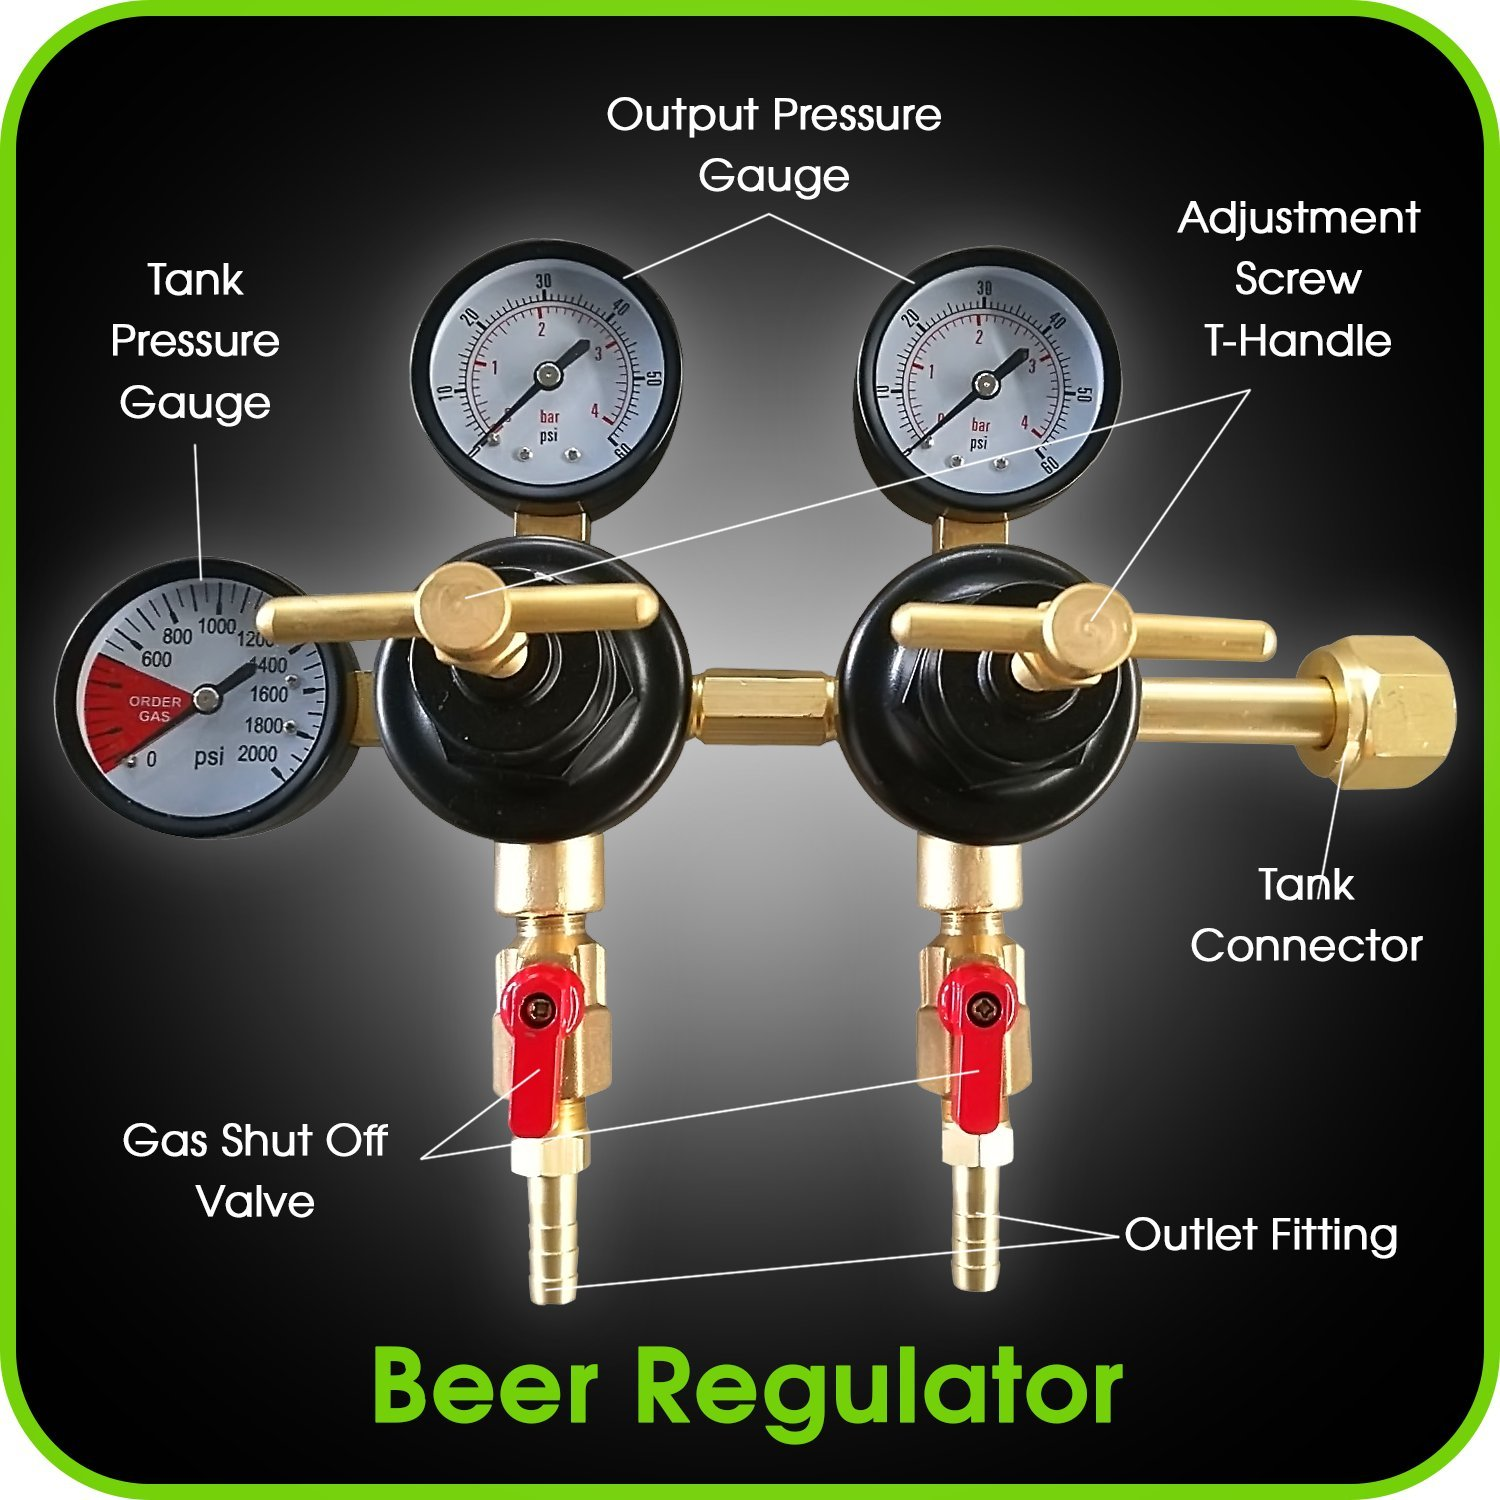 Co2 Beer Regulator Two Product Dual Pressure Kegerator Heavy Duty Features T-Style Adjusting Handle - 0 to 60 PSI-0 to 2000 Tank Pressure CGA-320 Inlet w/ 3/8'' O.D. Safety Discharge 50-55 PSI by Manatee (Image #2)